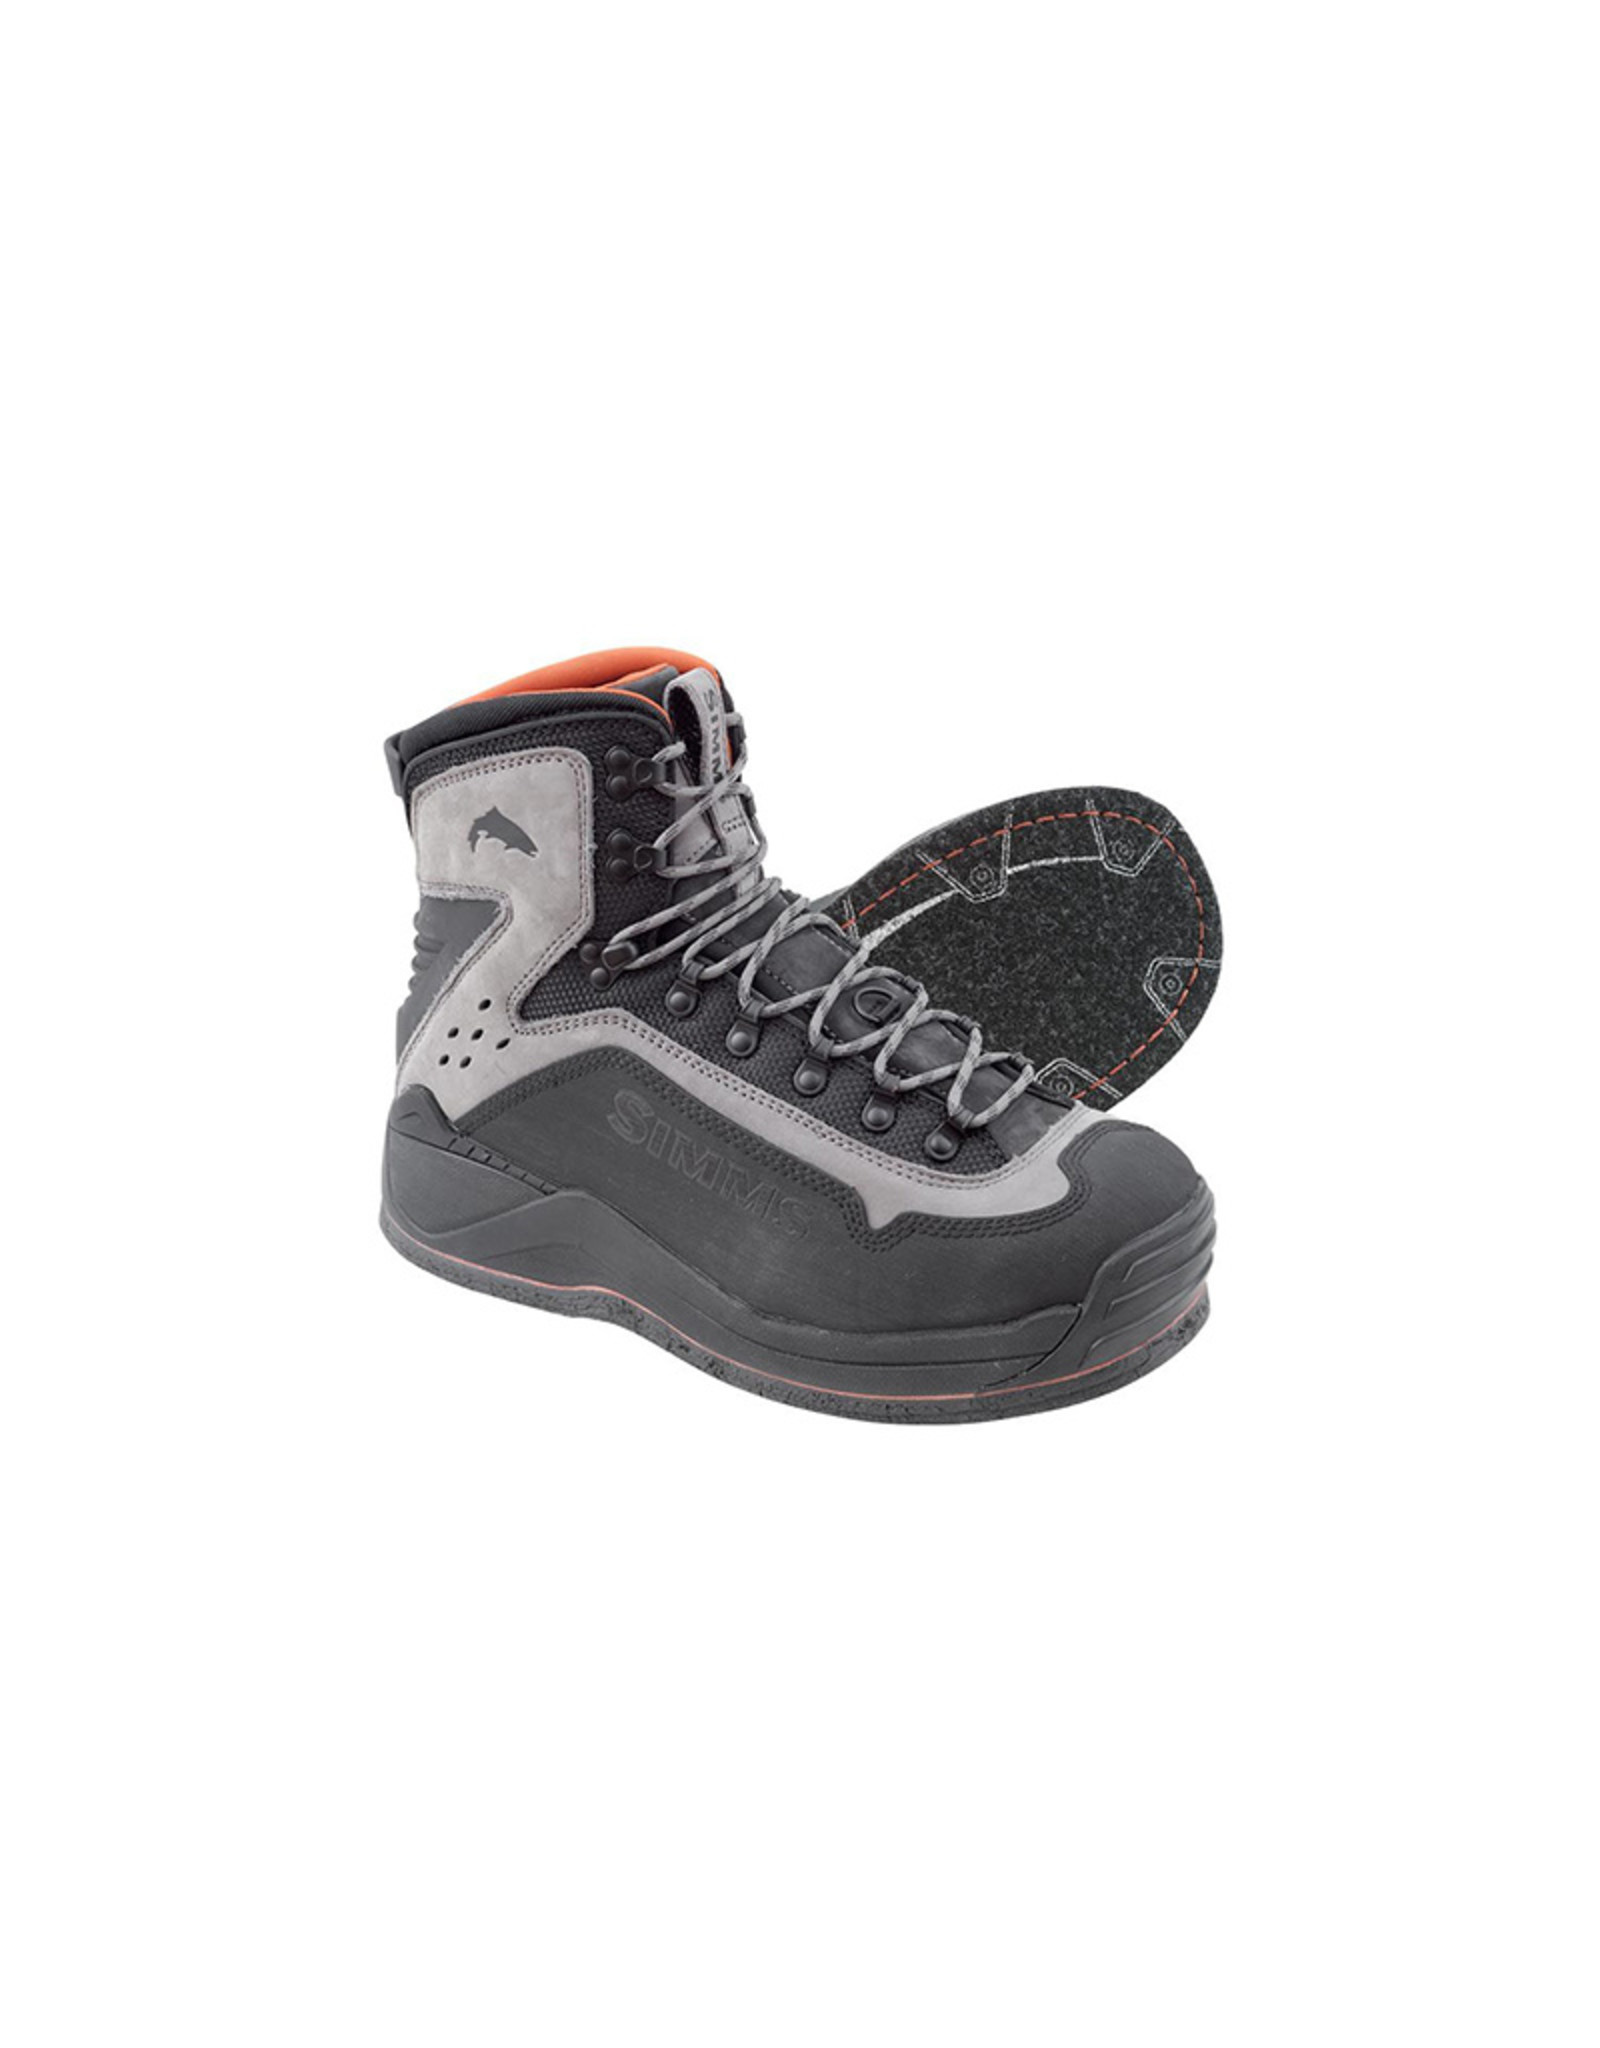 Simms G3 Guide Boot: Felt Sole